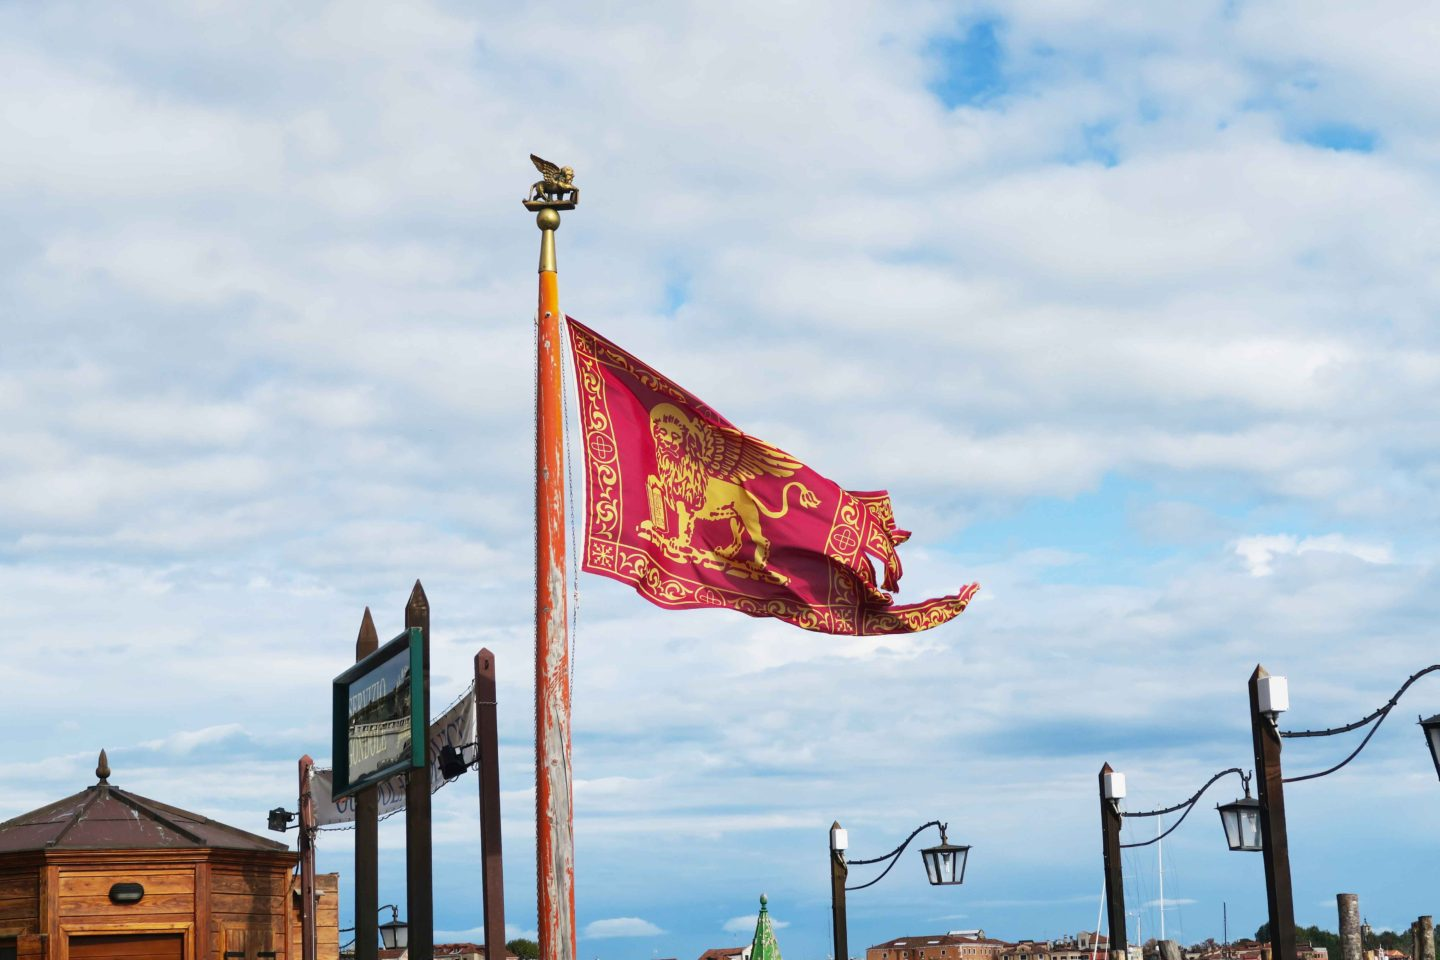 venetian flag red and gold lion flying in the sky in venice in italy